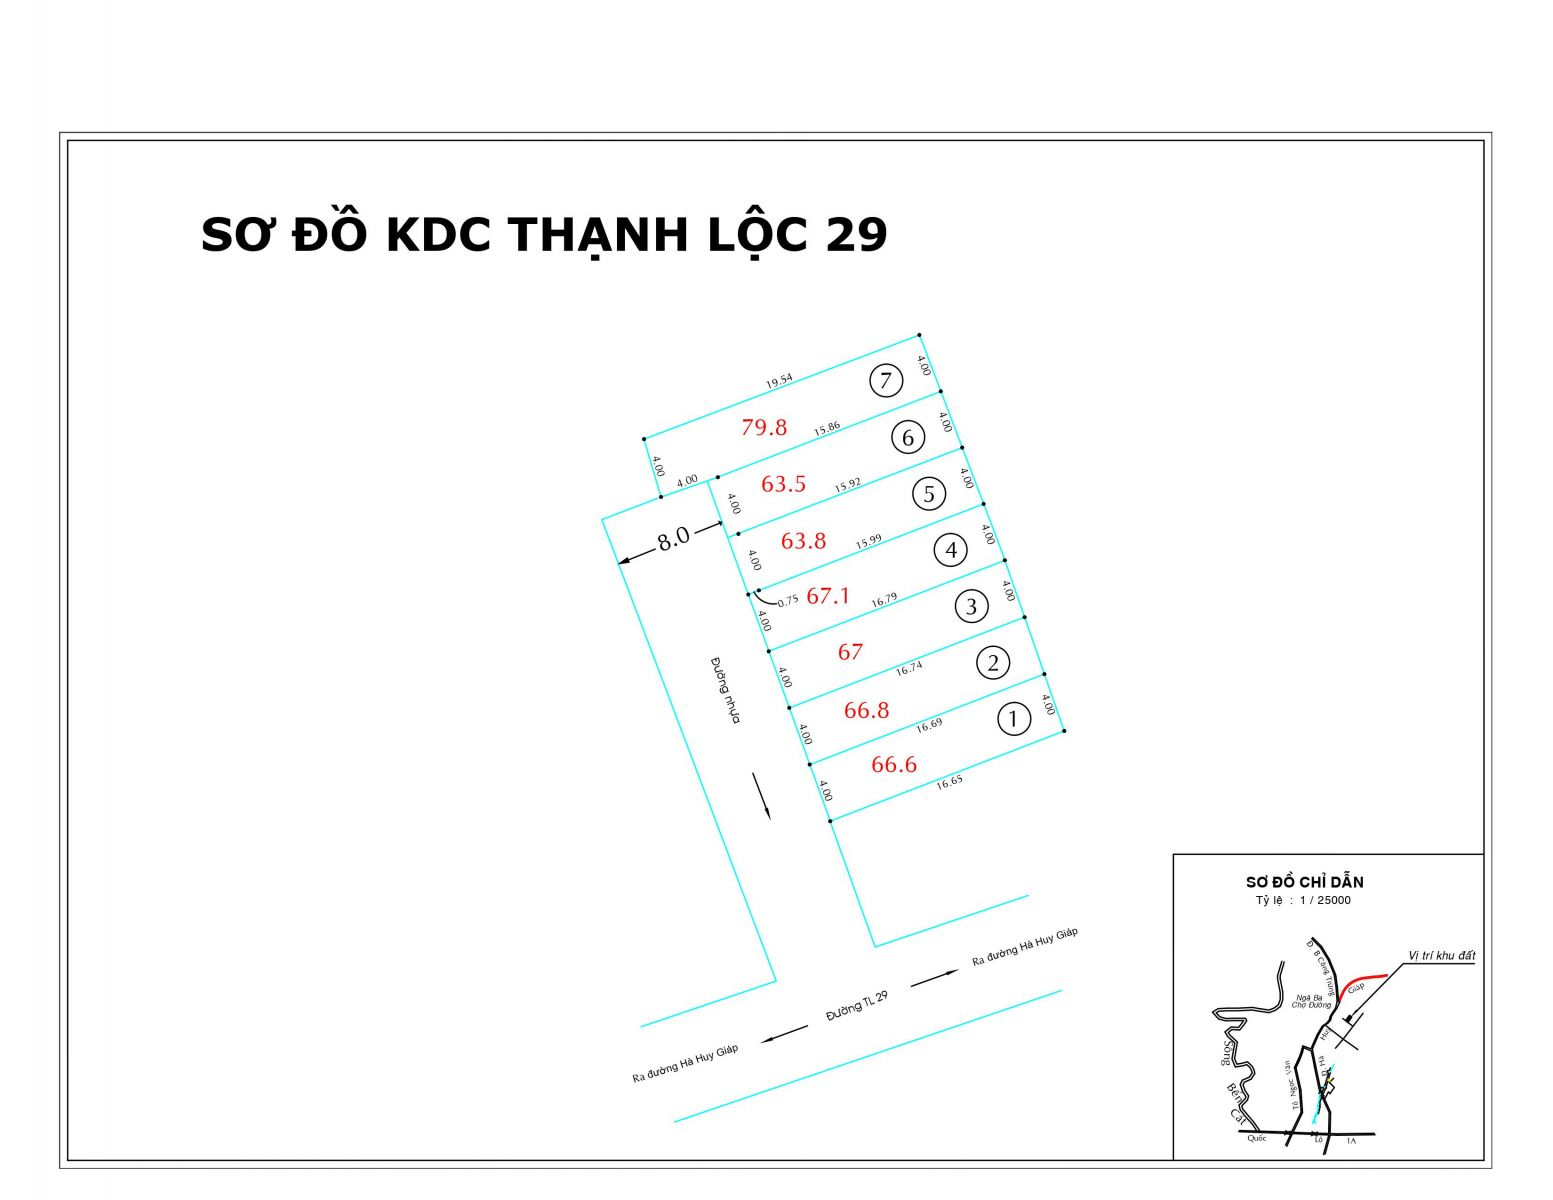 so do du an kdc thanh loc 29 quan 12